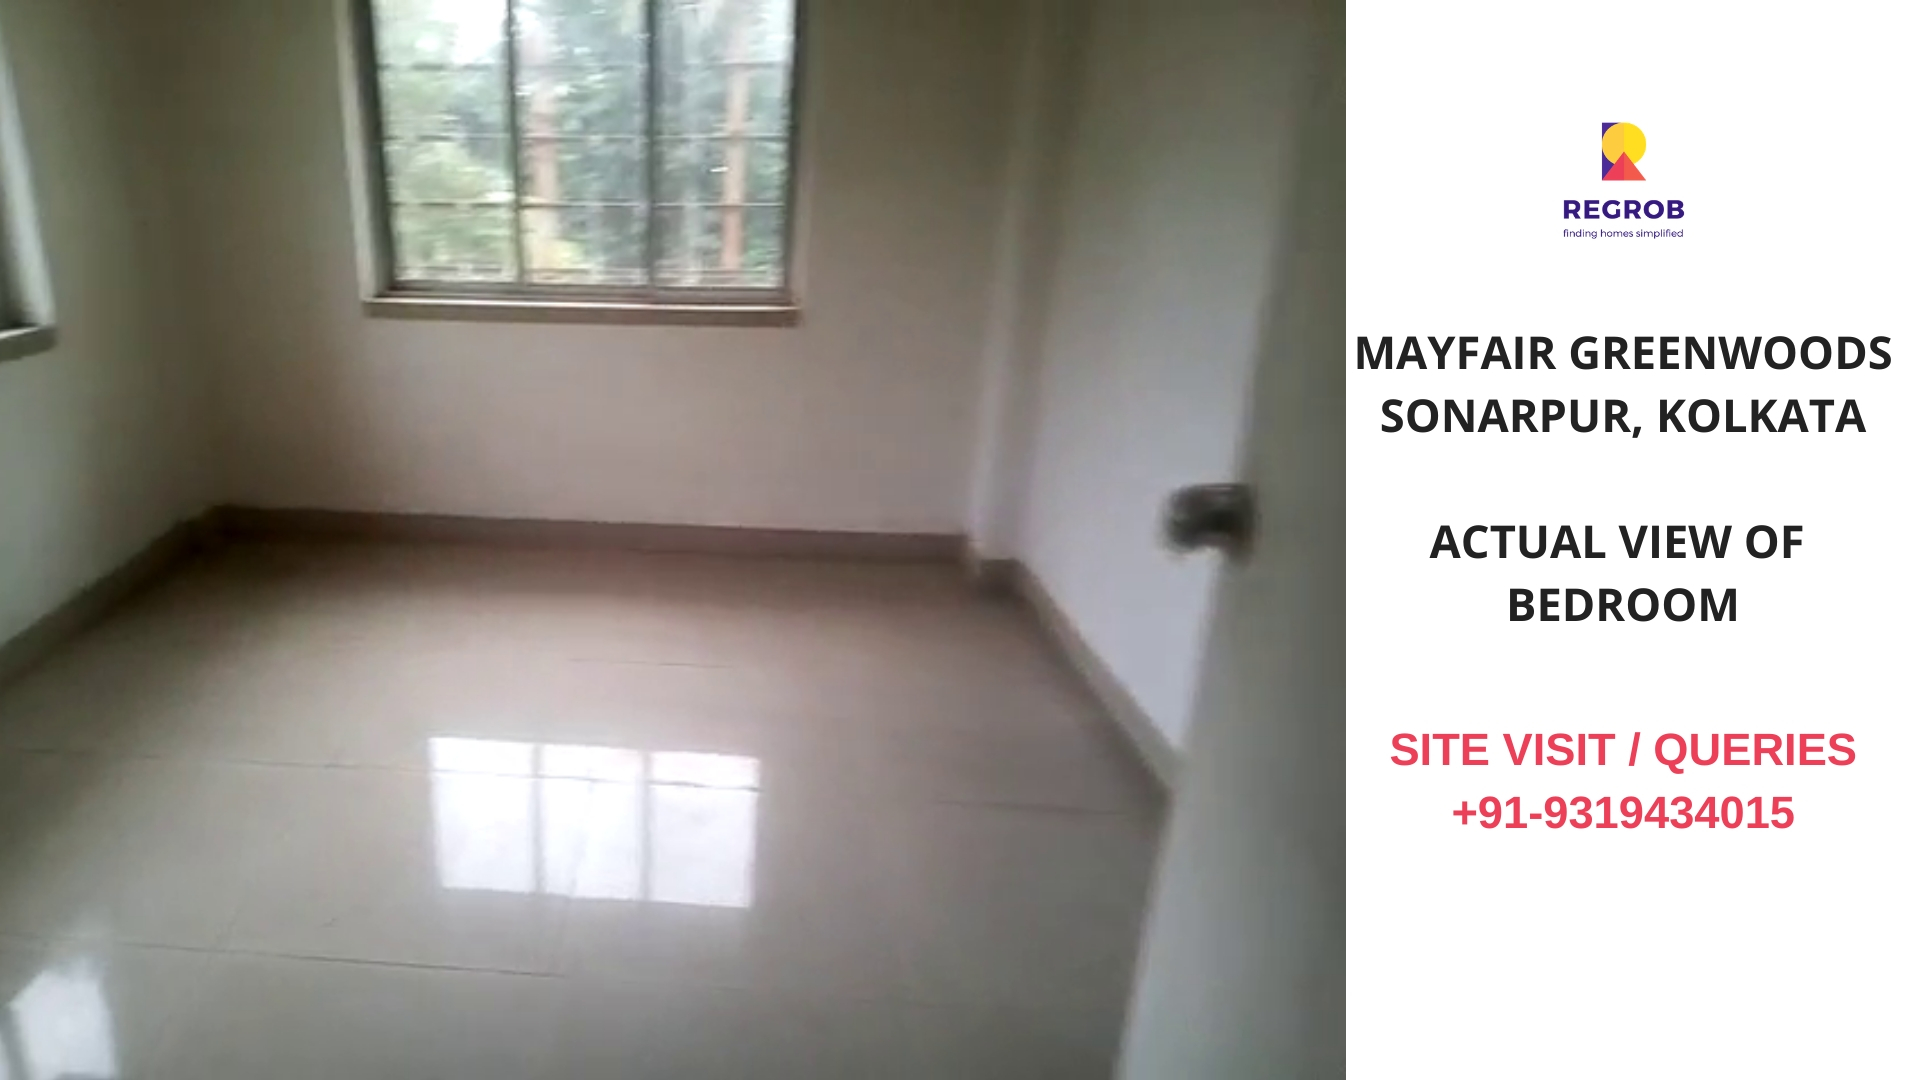 Mayfair Greenwoods Sonarpur Kolkata